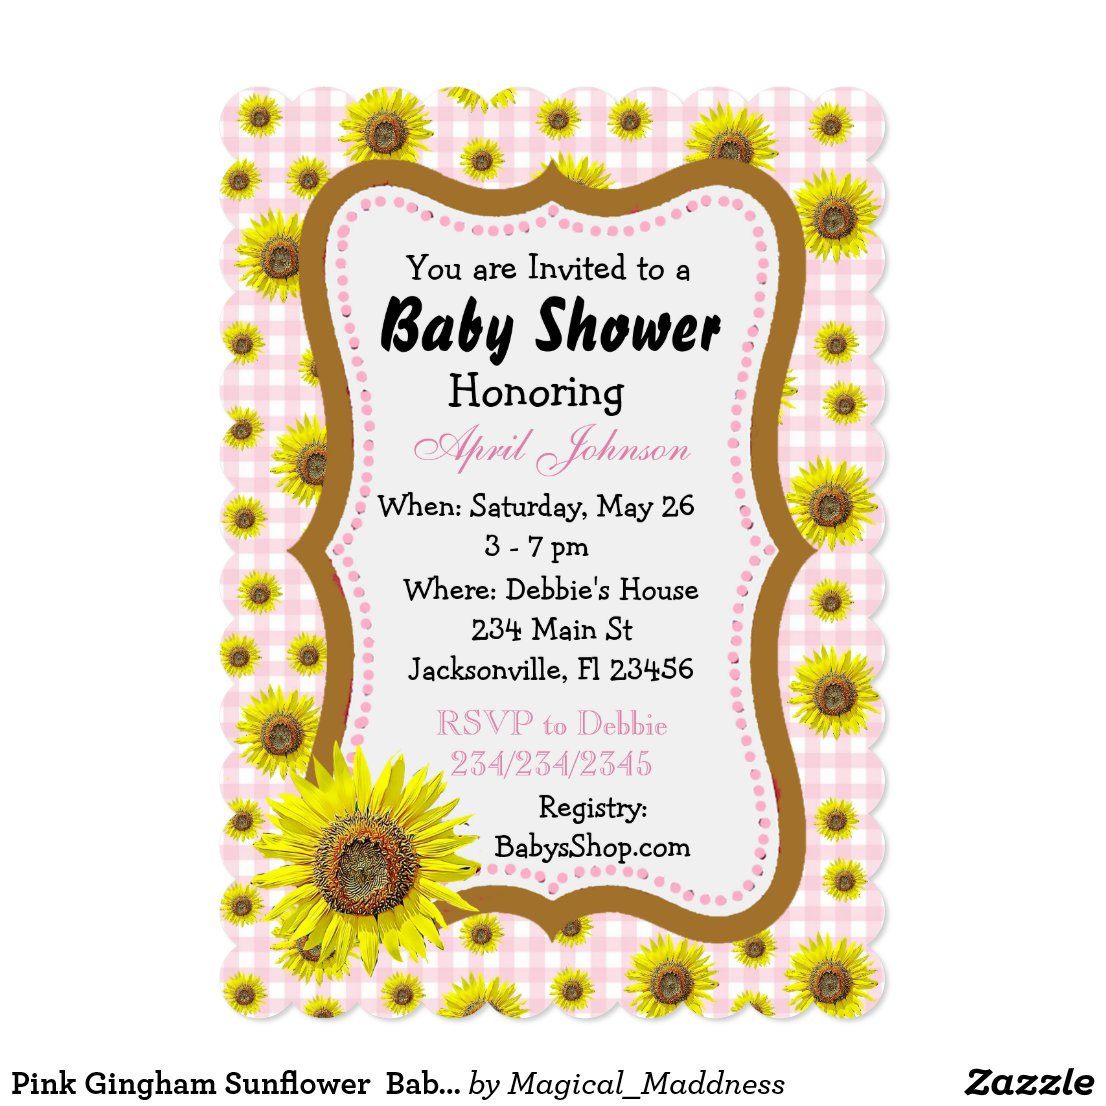 Pink Gingham Sunflower Baby Shower Invites